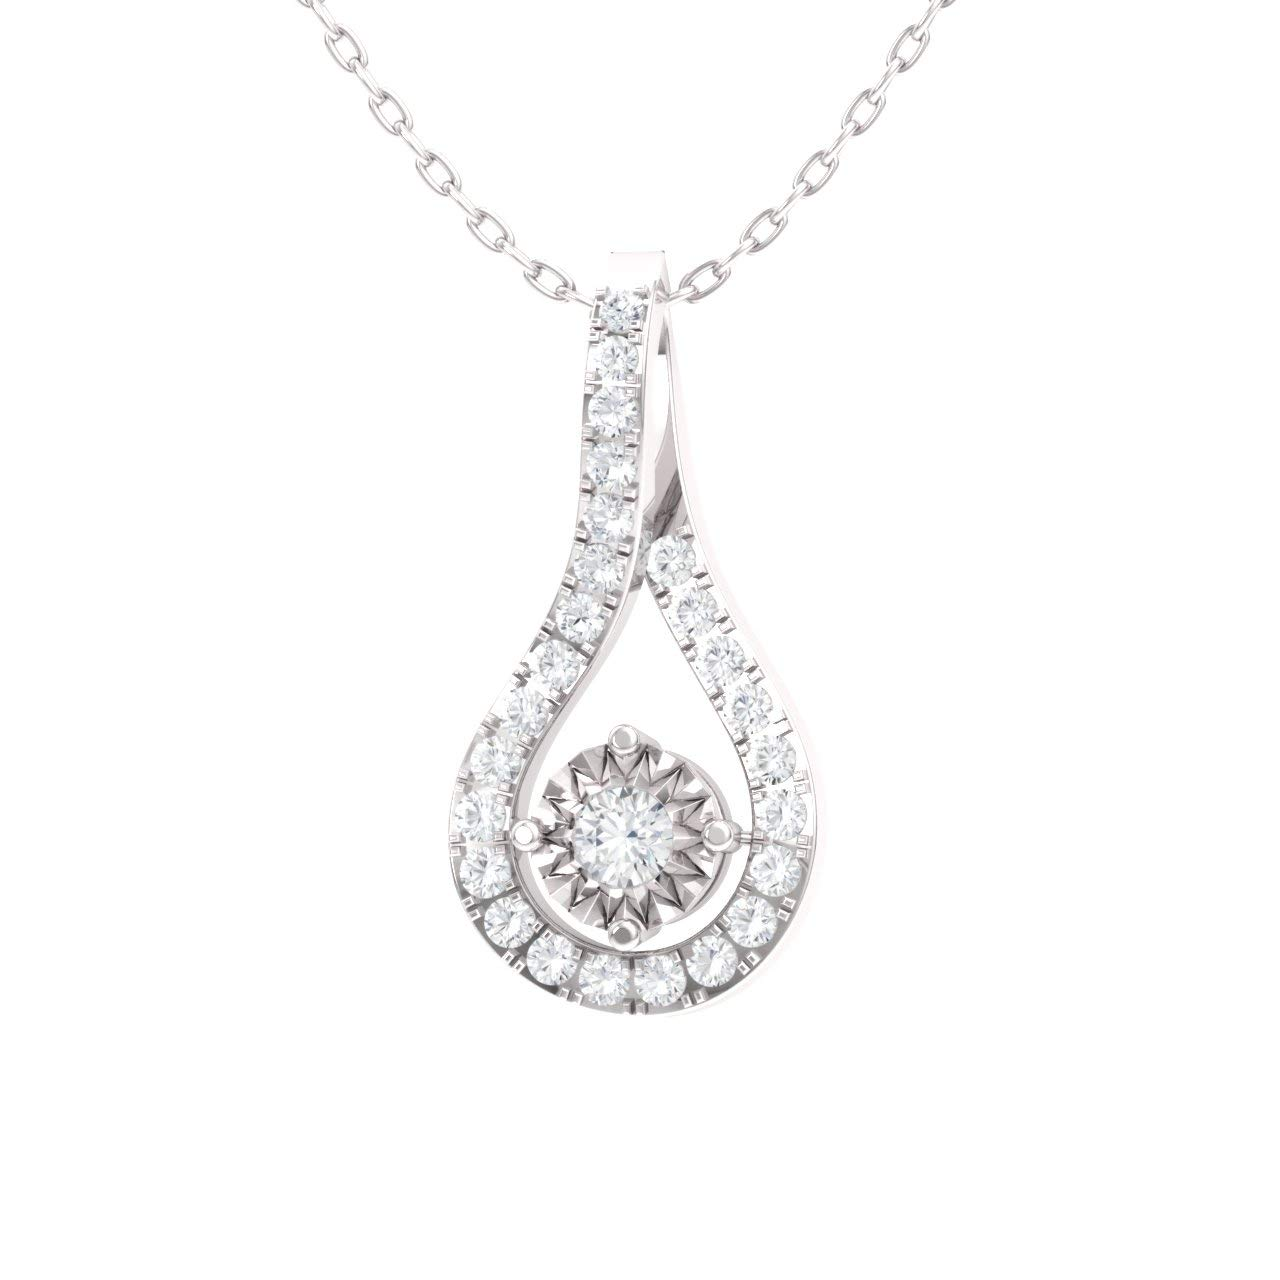 Diamondere Natural and Certified Gemstone and Diamond Drop Petite Necklace in 14k White Gold Pendant with Chain